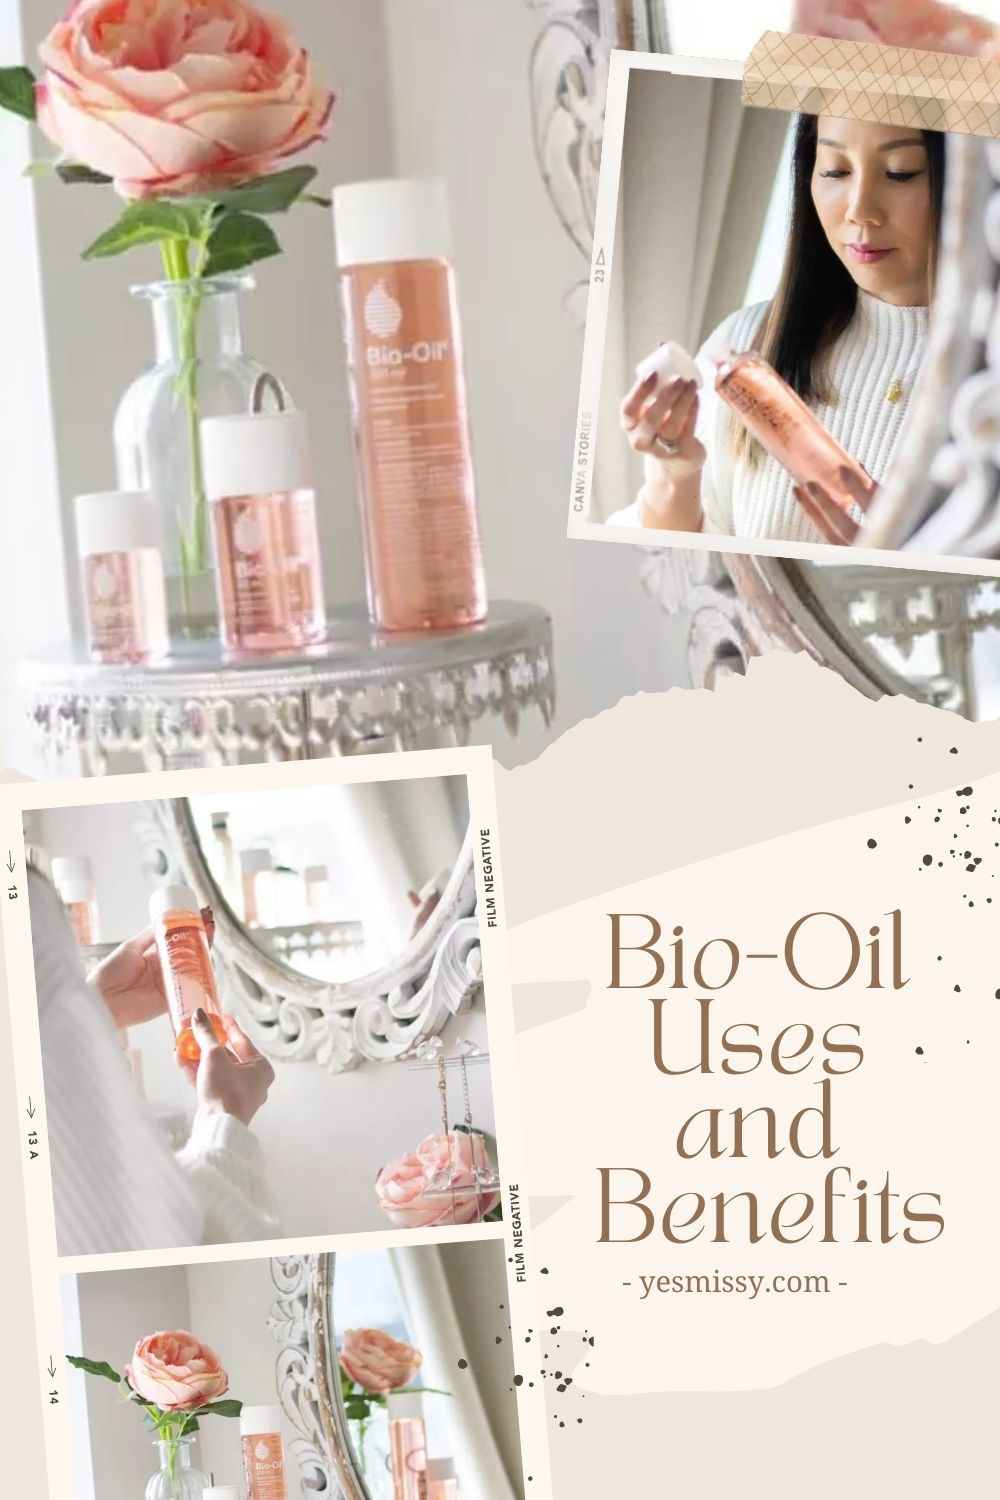 Bio-Oil for face: Does Bio-Oil work on scars, wrinkles, and pigmentation? It does that and so much more. Learn 5 ways to ad add Bio-oil to your skincare routine.